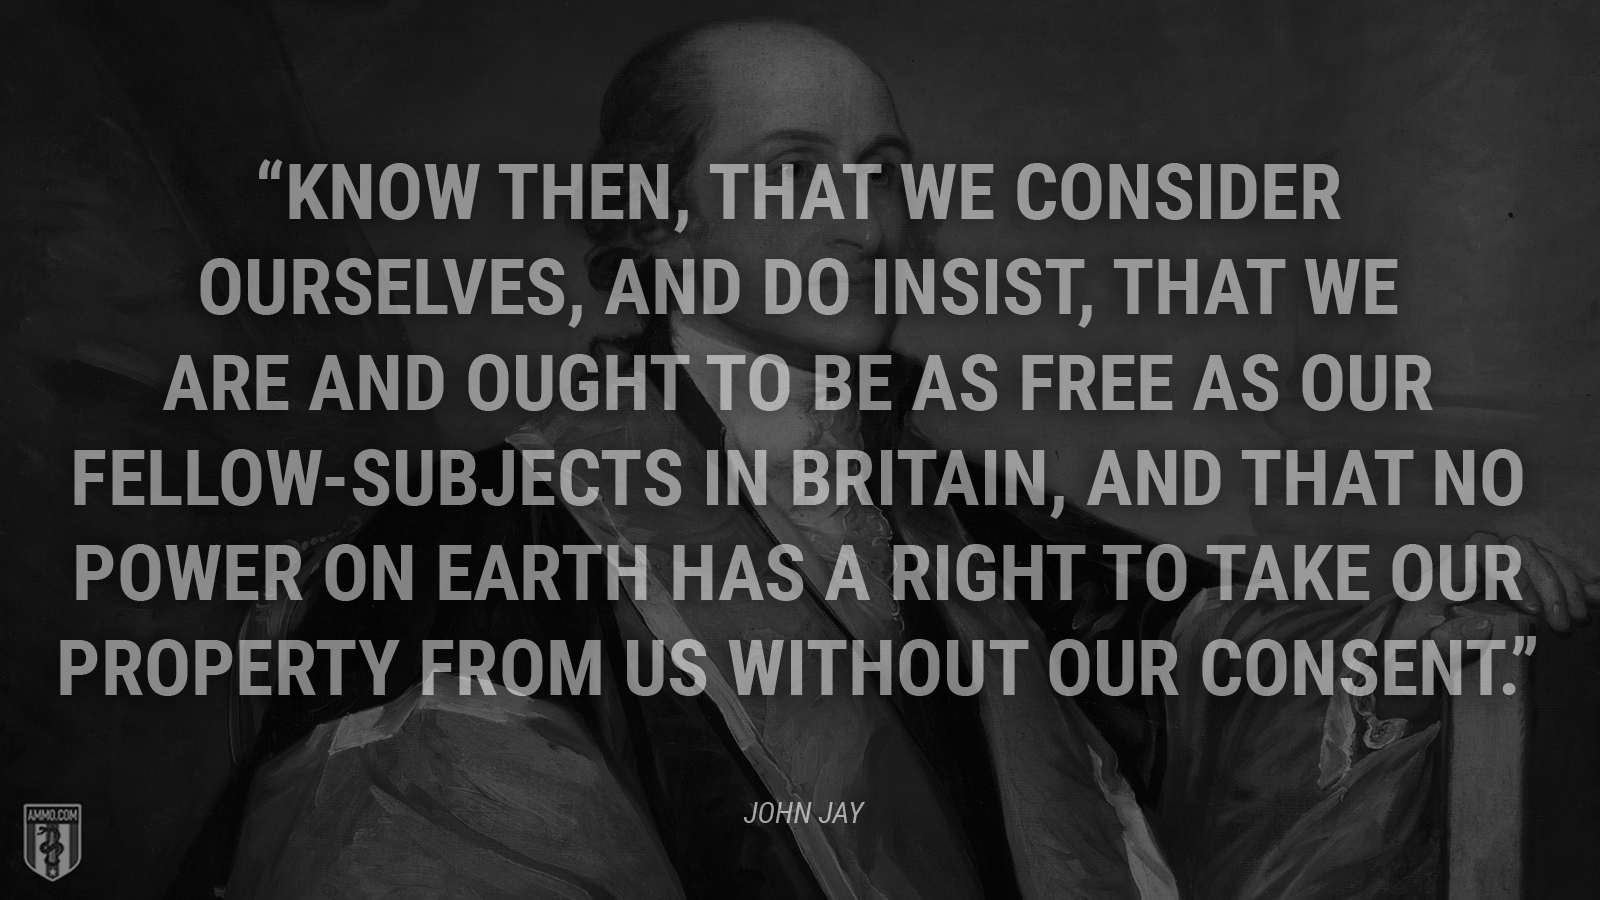 """Know then, That we consider ourselves, and do insist, that we are and ought to be as free as our fellow-subjects in Britain, and that no power on earth has a right to take our property from us without our consent."" - John Jay"